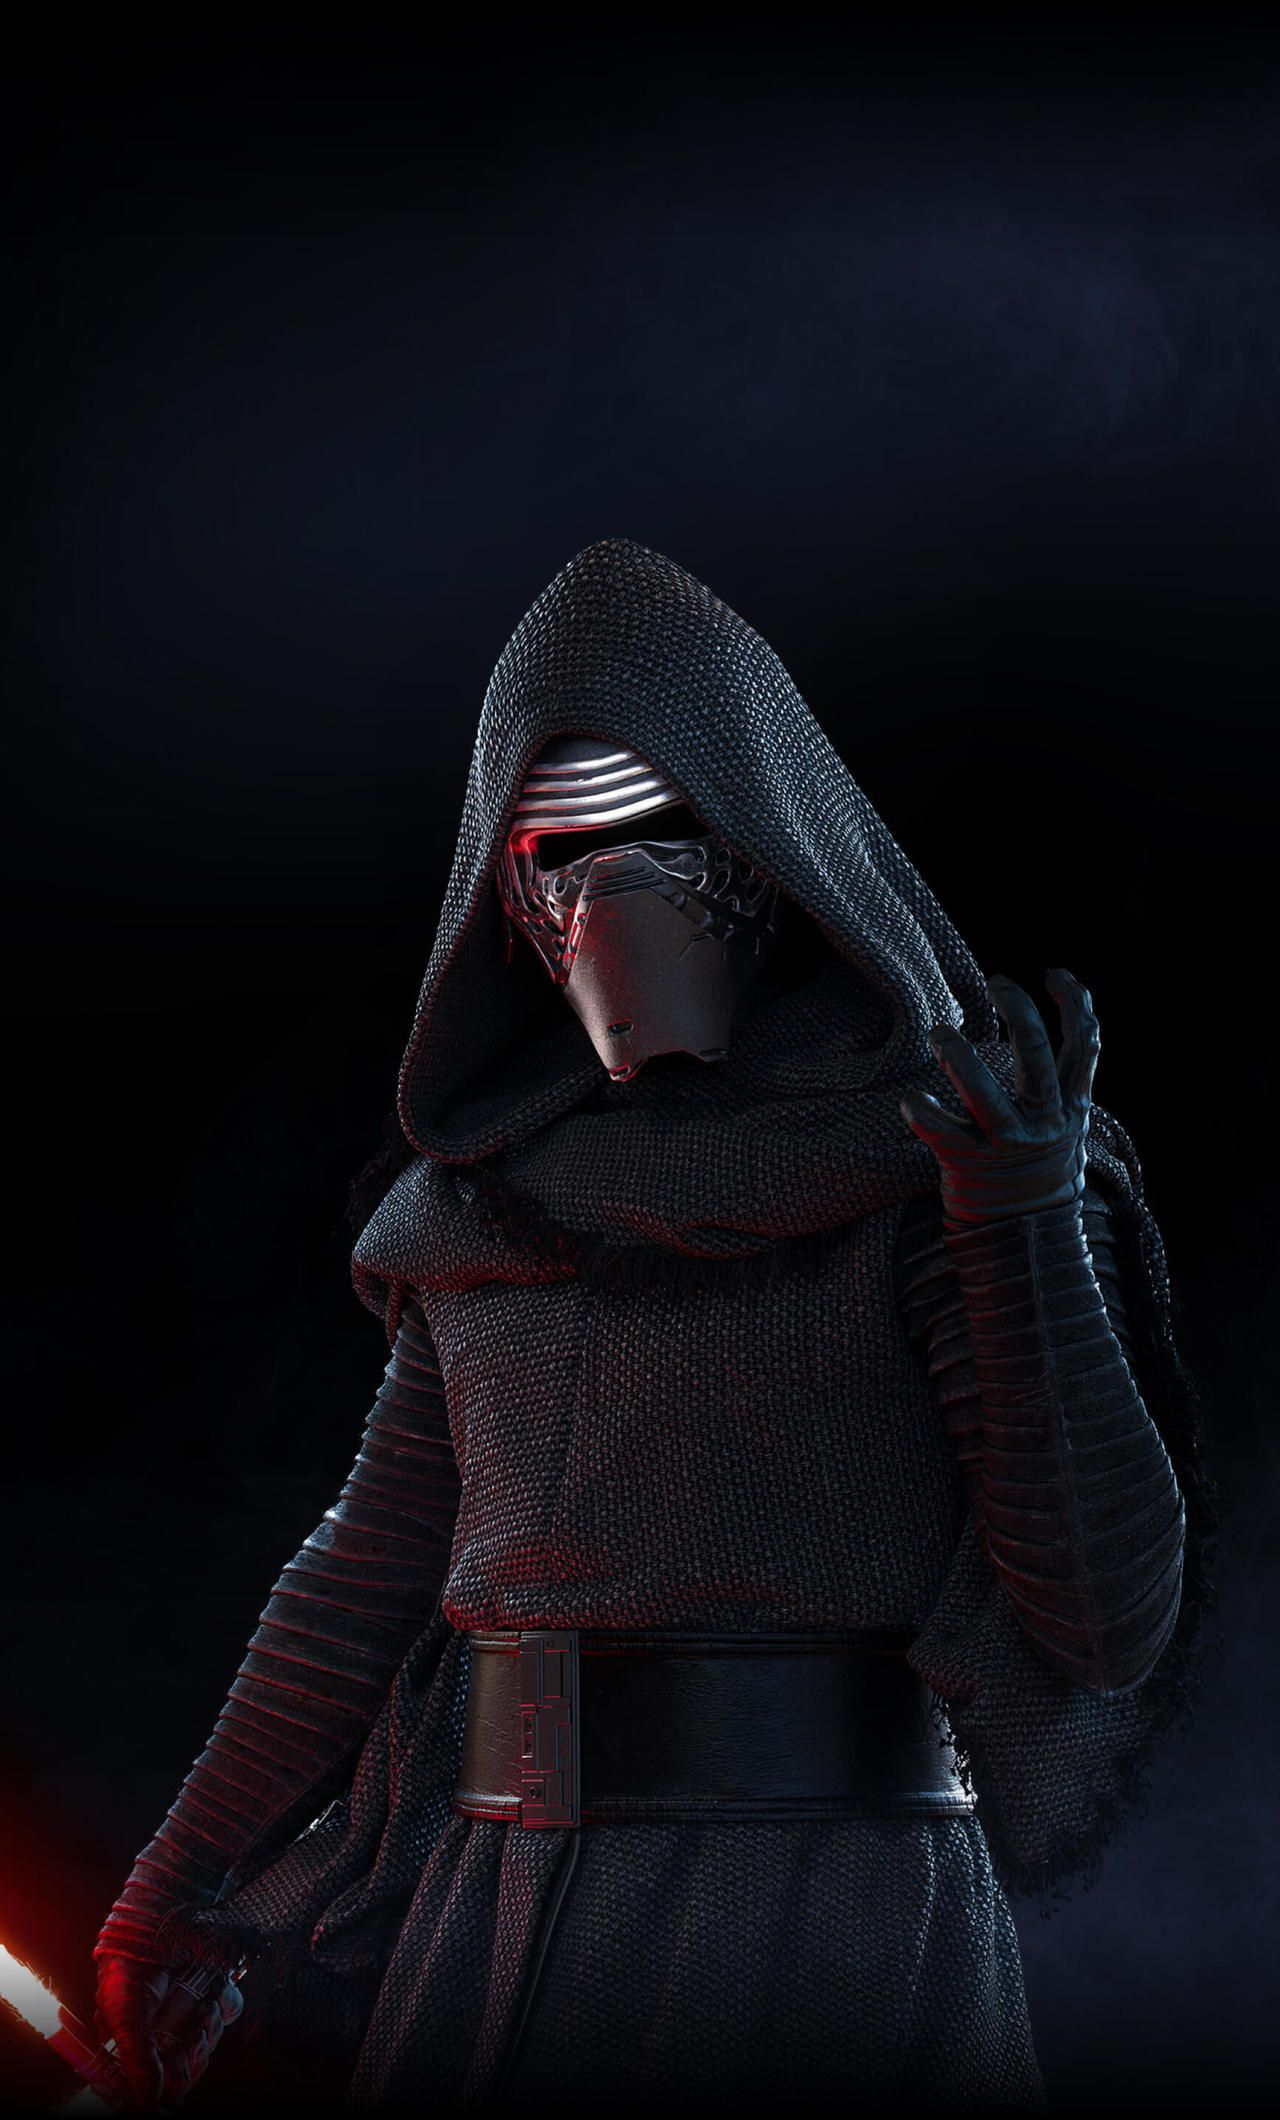 star wars kylo ren wallpaper 71897 (With images) Star